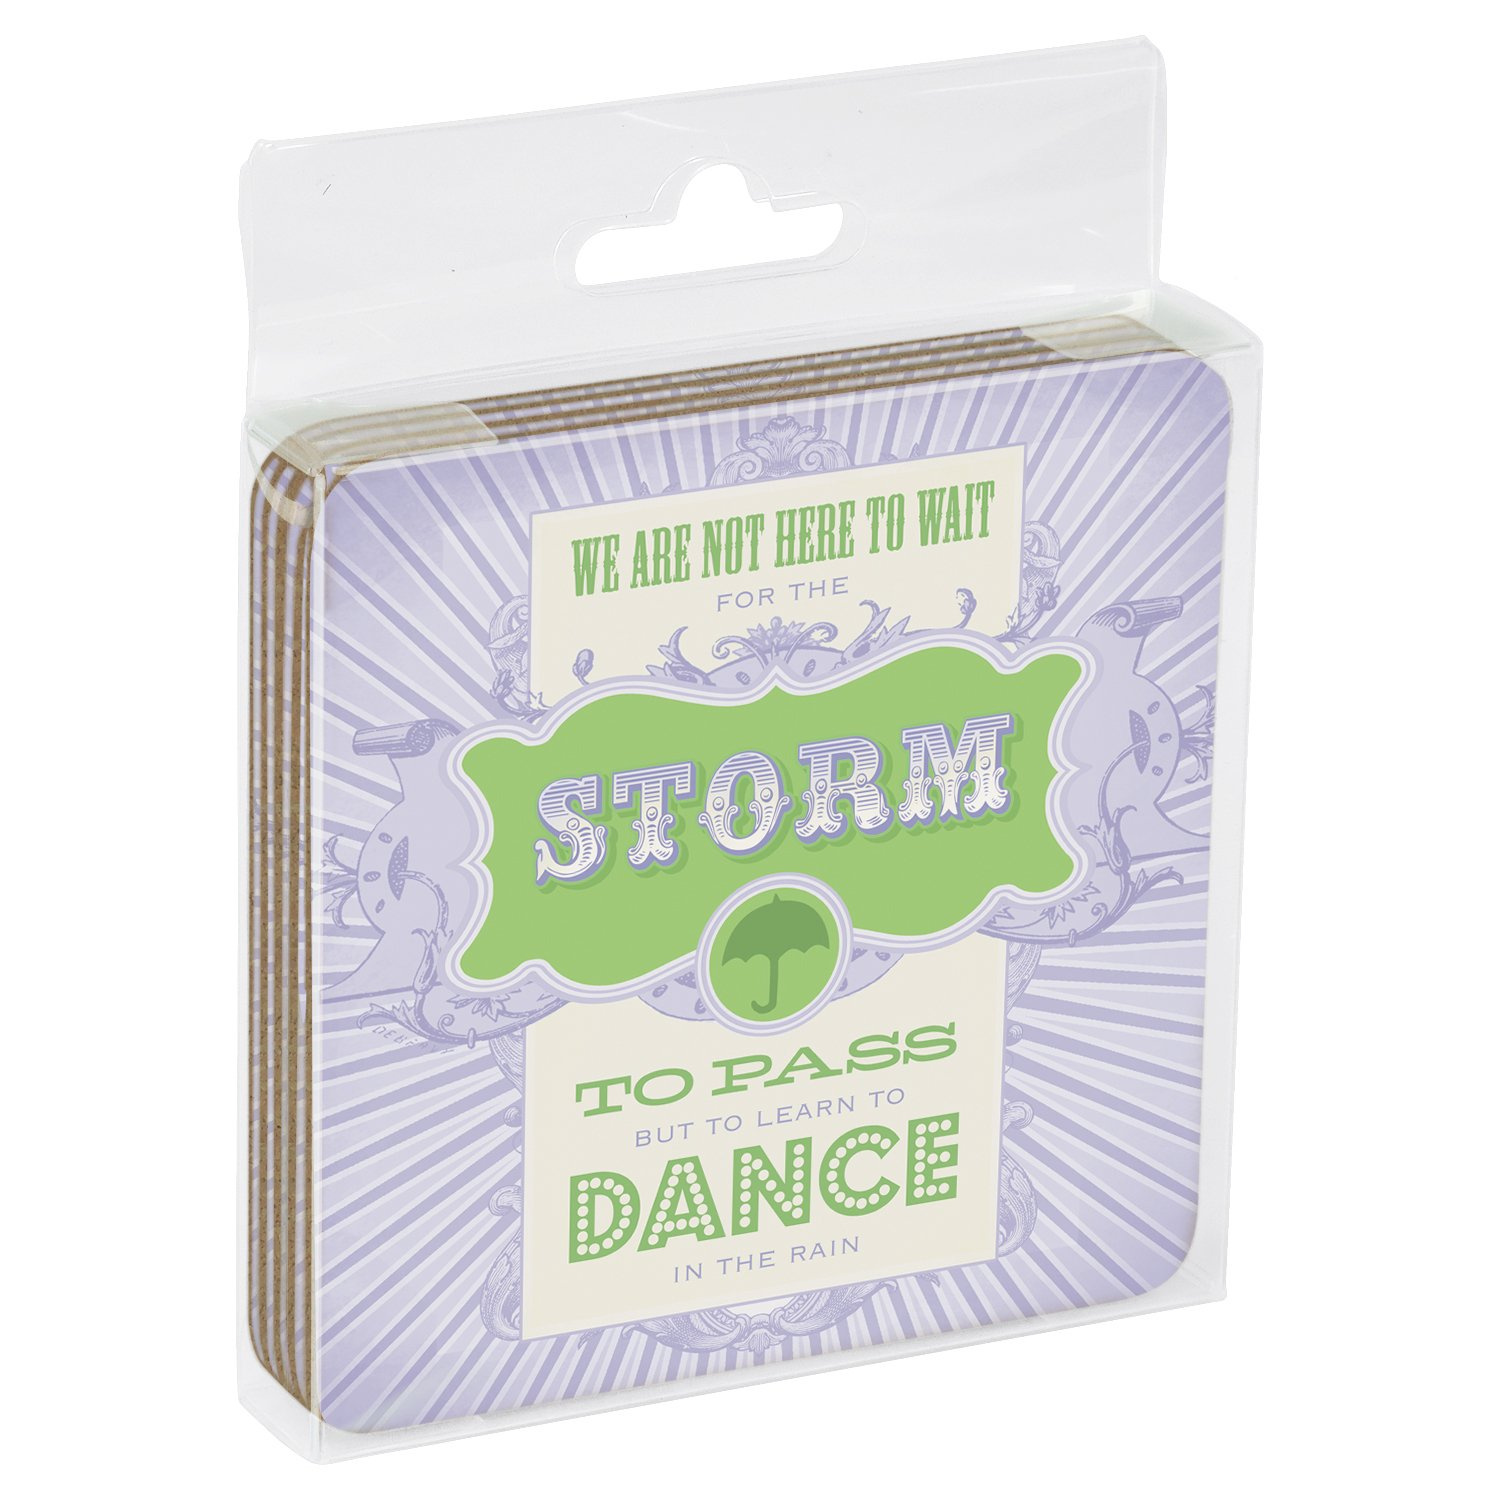 Tree-Free Greetings Set Of 4 Cork-Backed Coasters Passing Storms Themed Inspriational Quote Art 96184 3.75 x 3.75 Inches